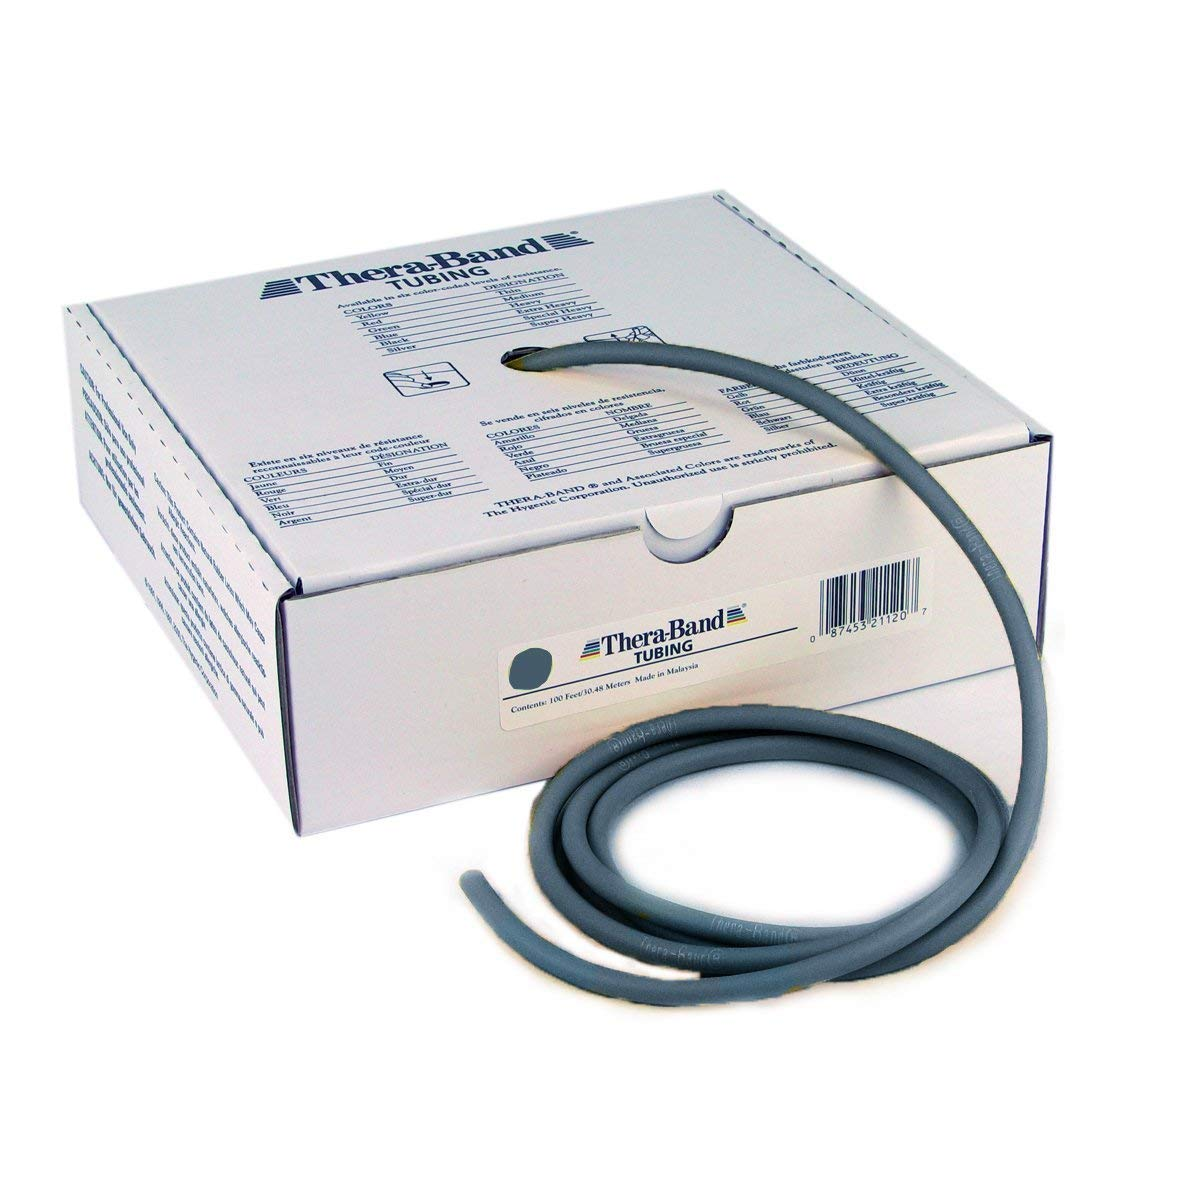 Hygenic Corporation (a) Thera-Band Resistive Exercise Tubing- 100 Ft.- Silver